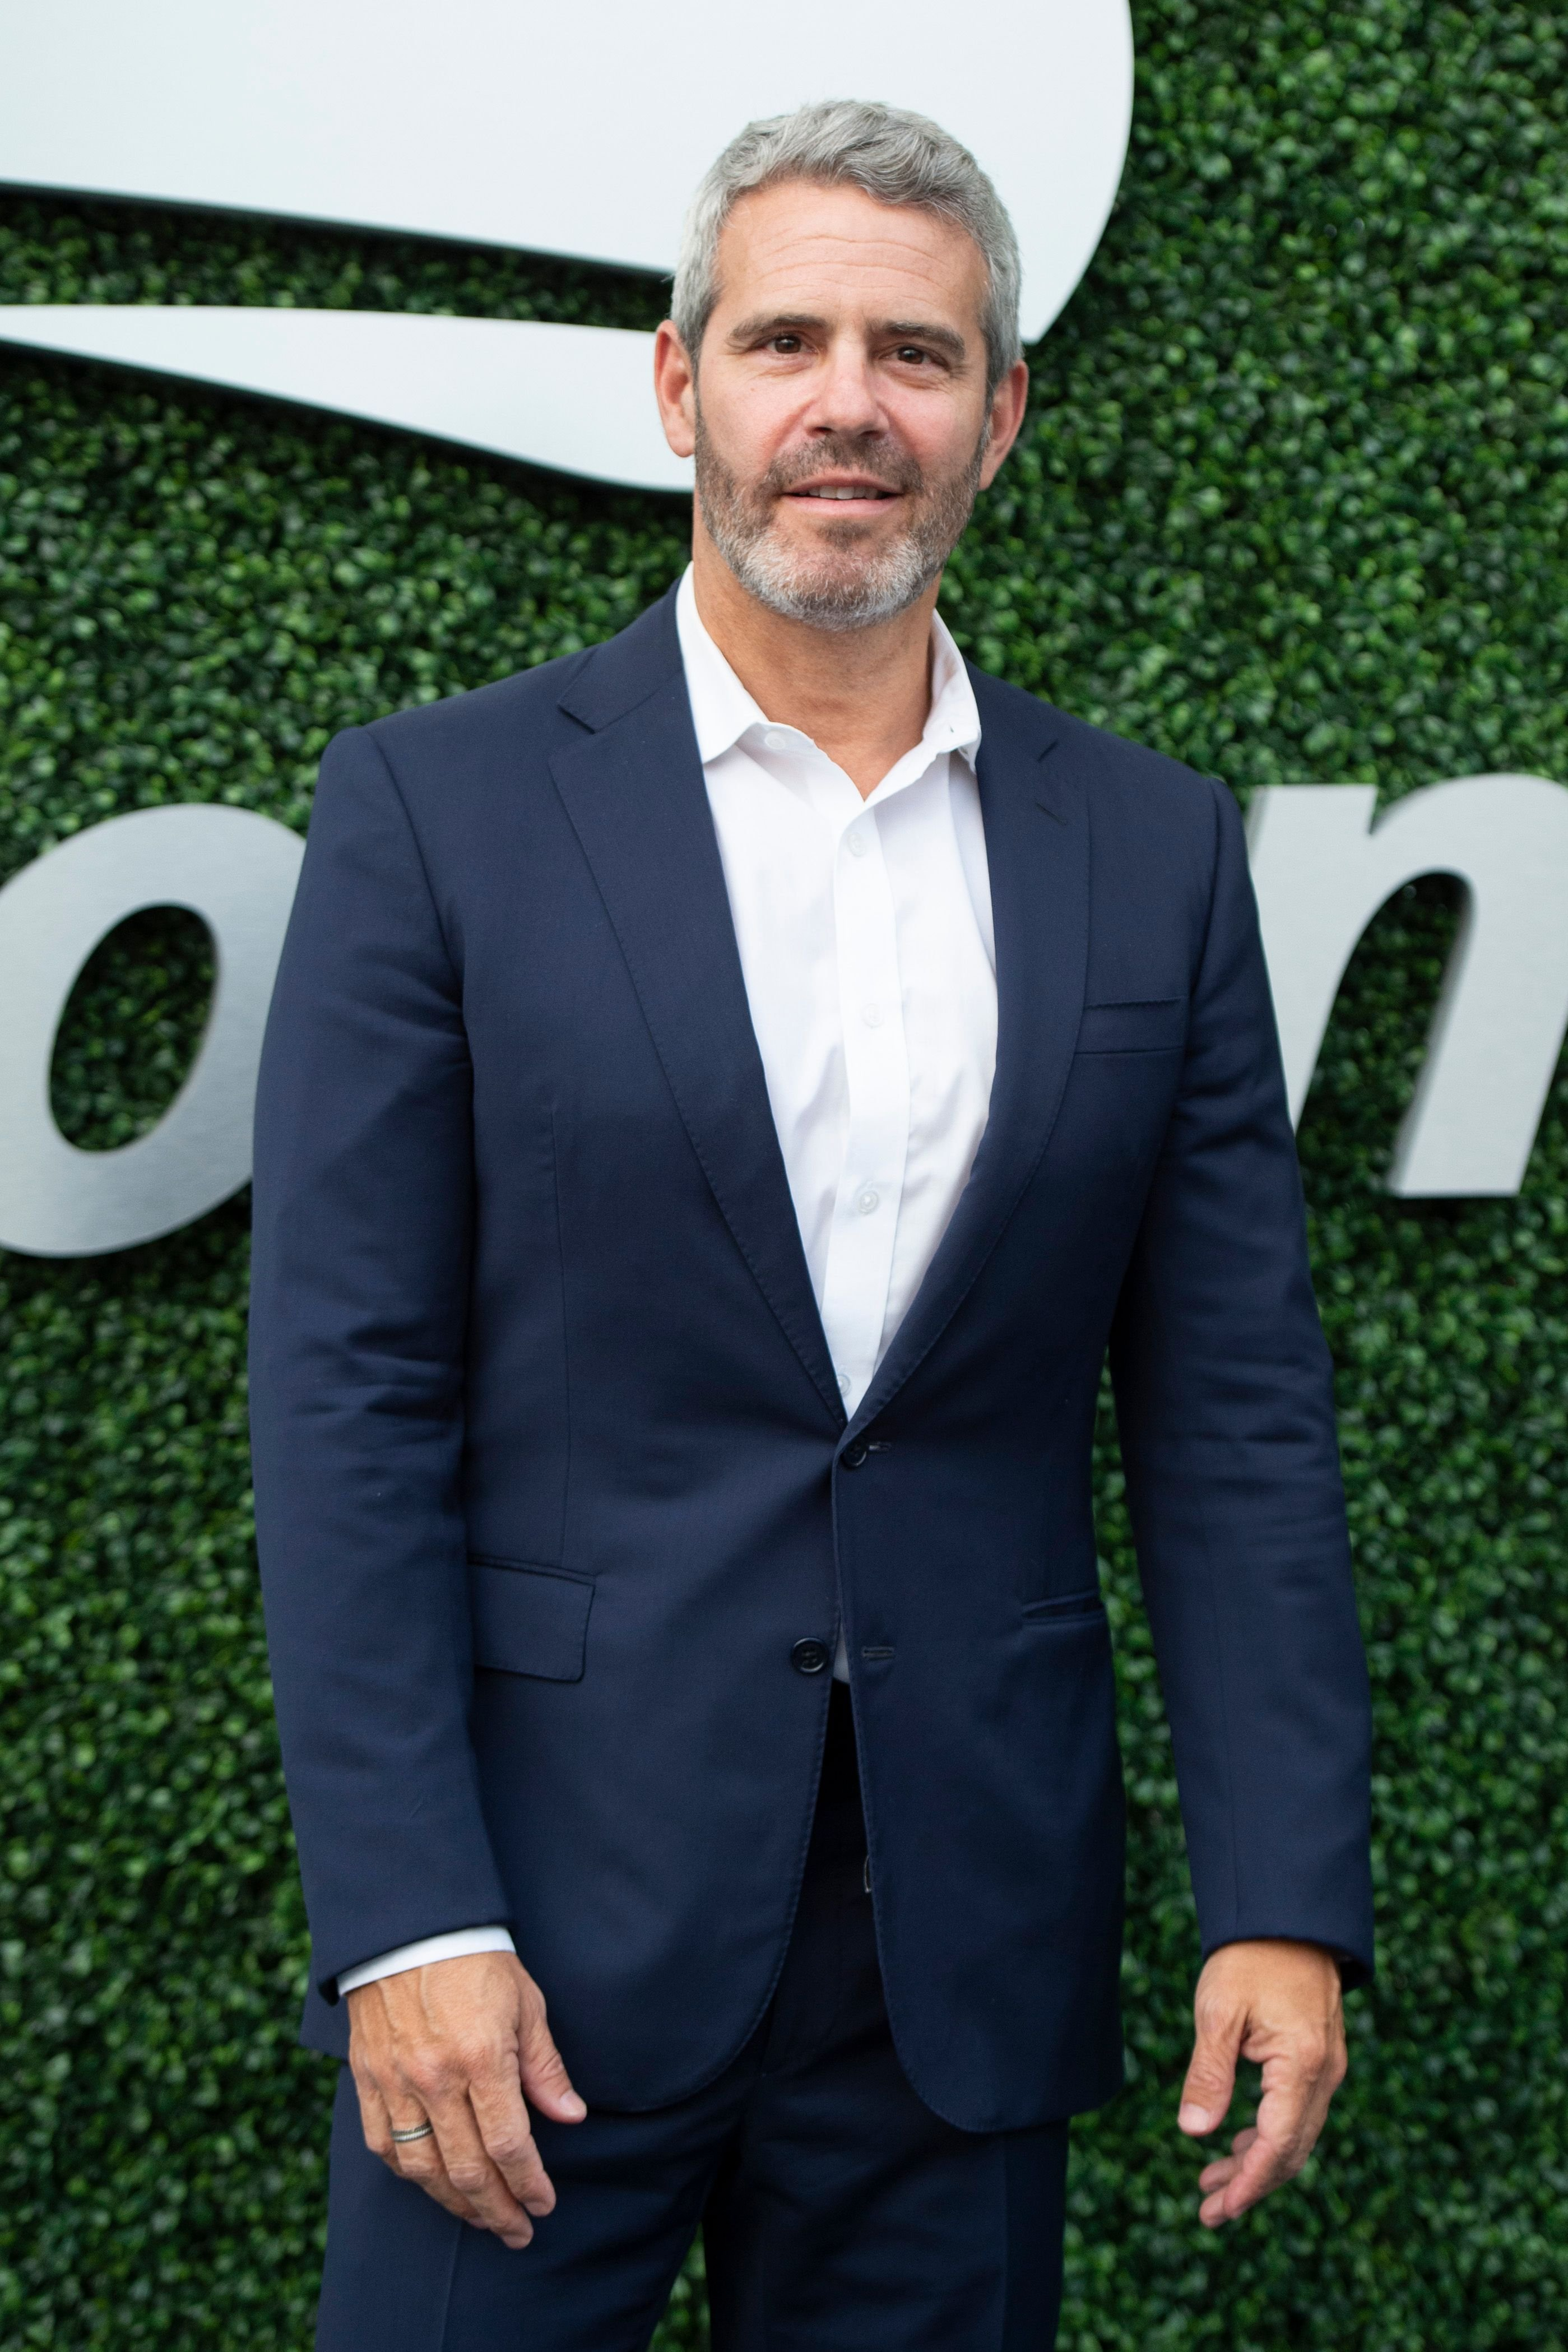 Andy Cohen attends the US Open on September 5, 2019, in New York City. | Source: Getty Images